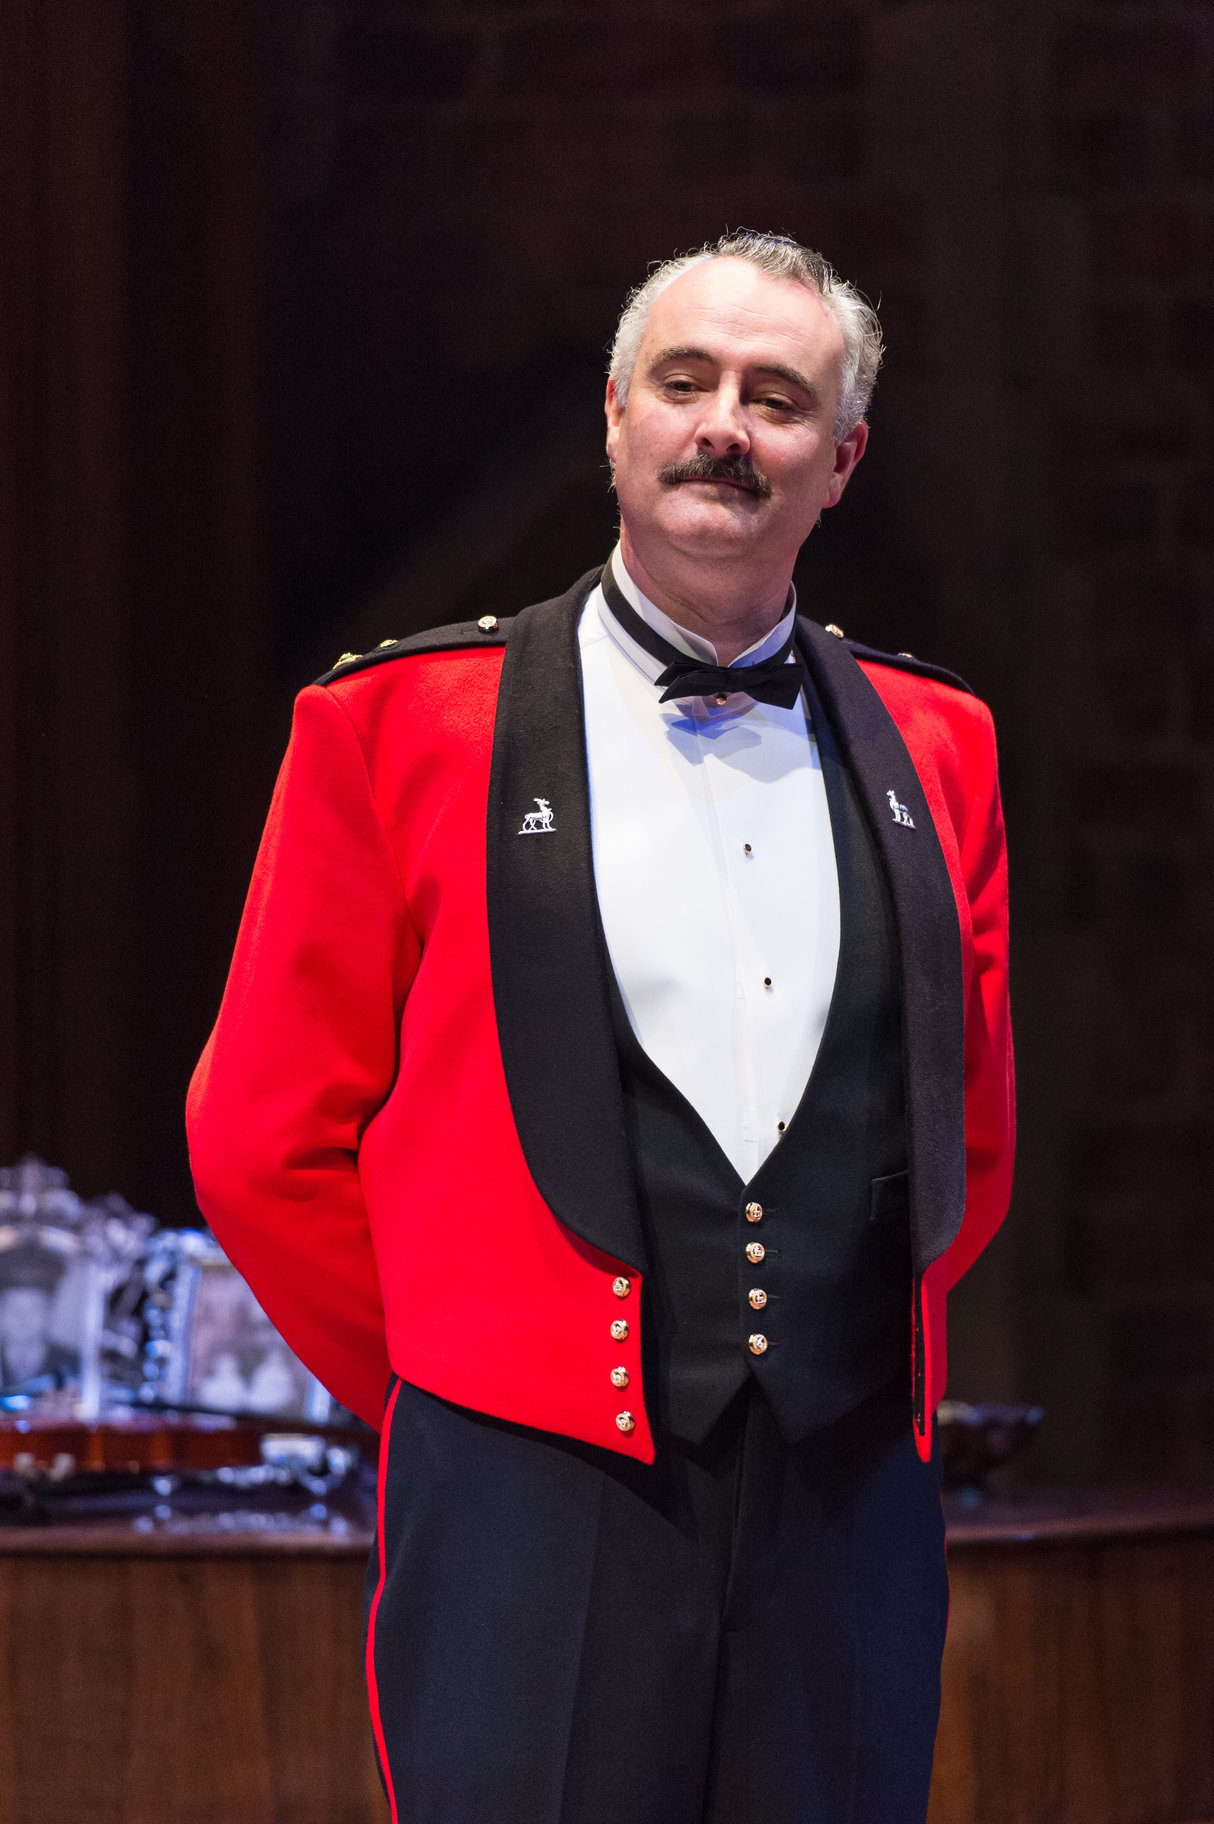 John Hodgkinson in uniform as Don Pedro.